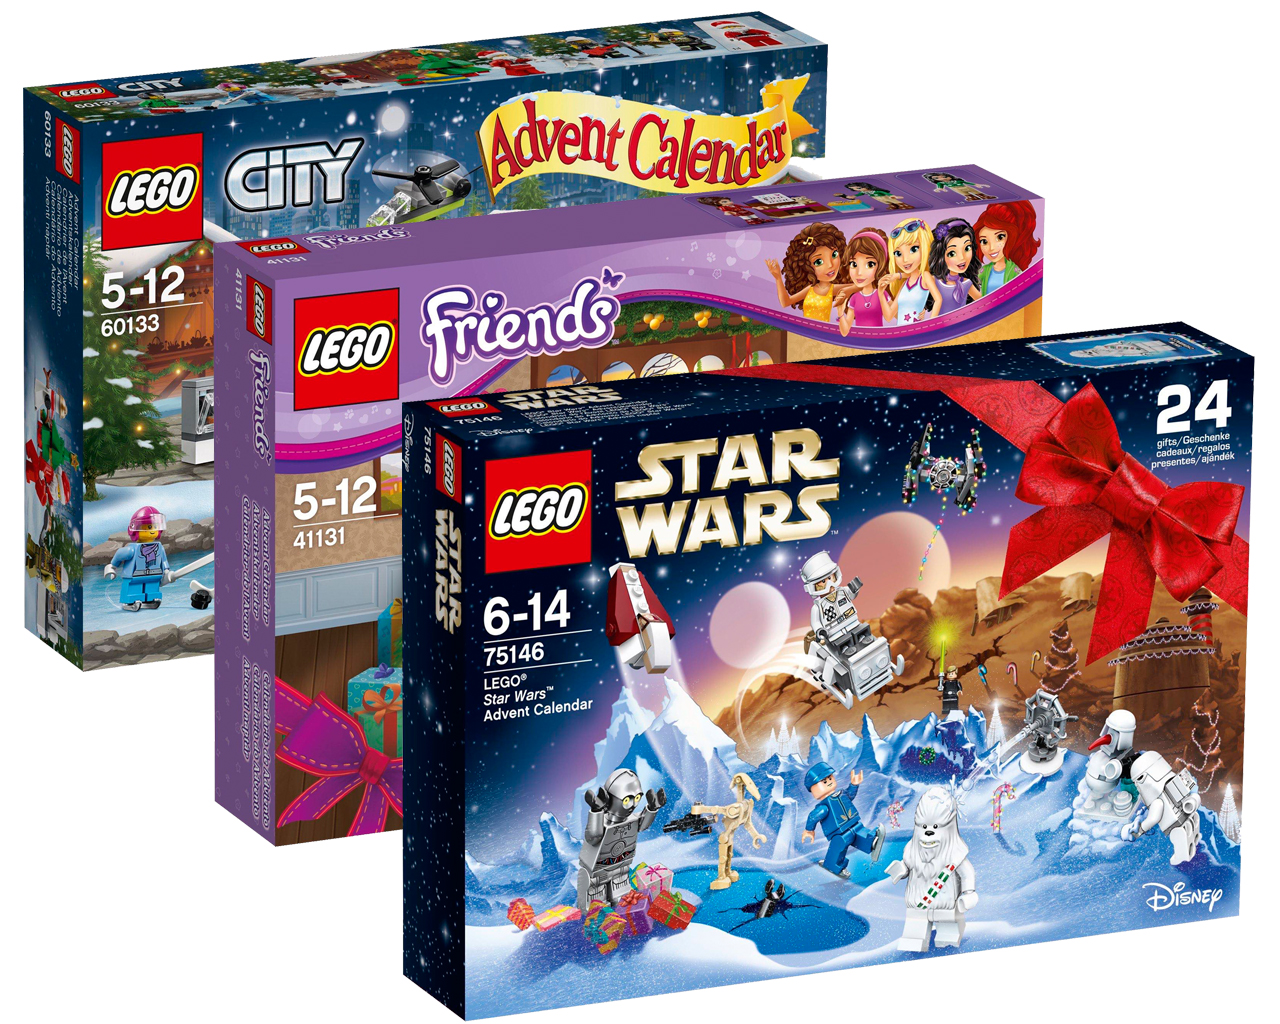 lego adventskalender 2016 lego star wars city friends. Black Bedroom Furniture Sets. Home Design Ideas